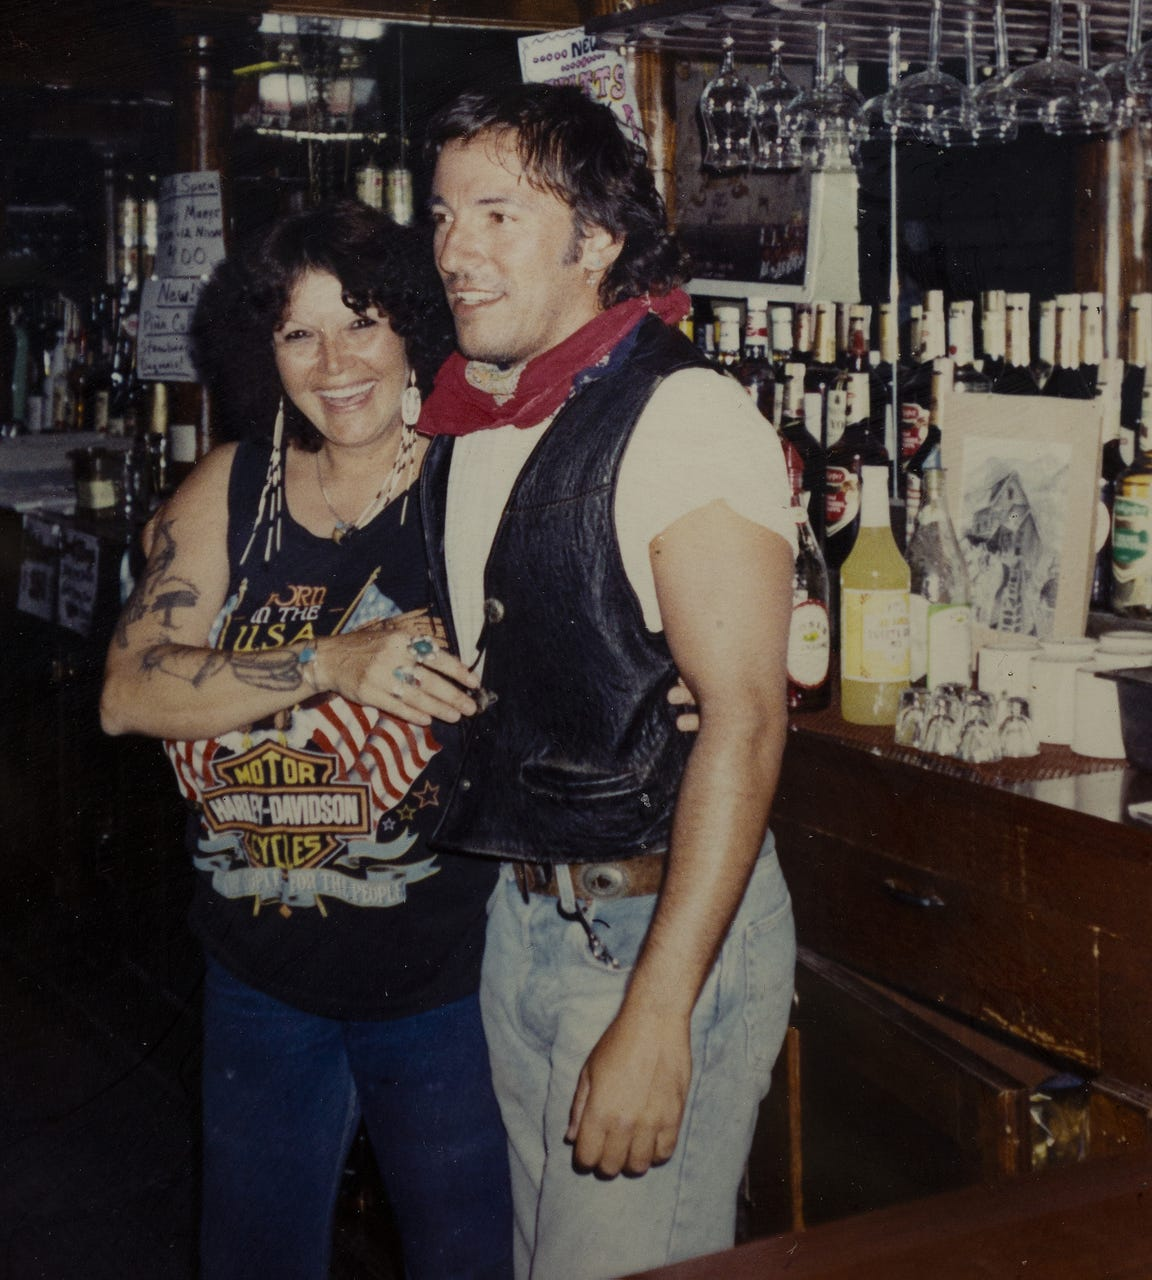 """Brenda """"Bubbles"""" Phillips was behind the bar 30 years ago at Matt's Saloon, her first week back after life-threatening health problems, when Bruce Springsteen walked in."""